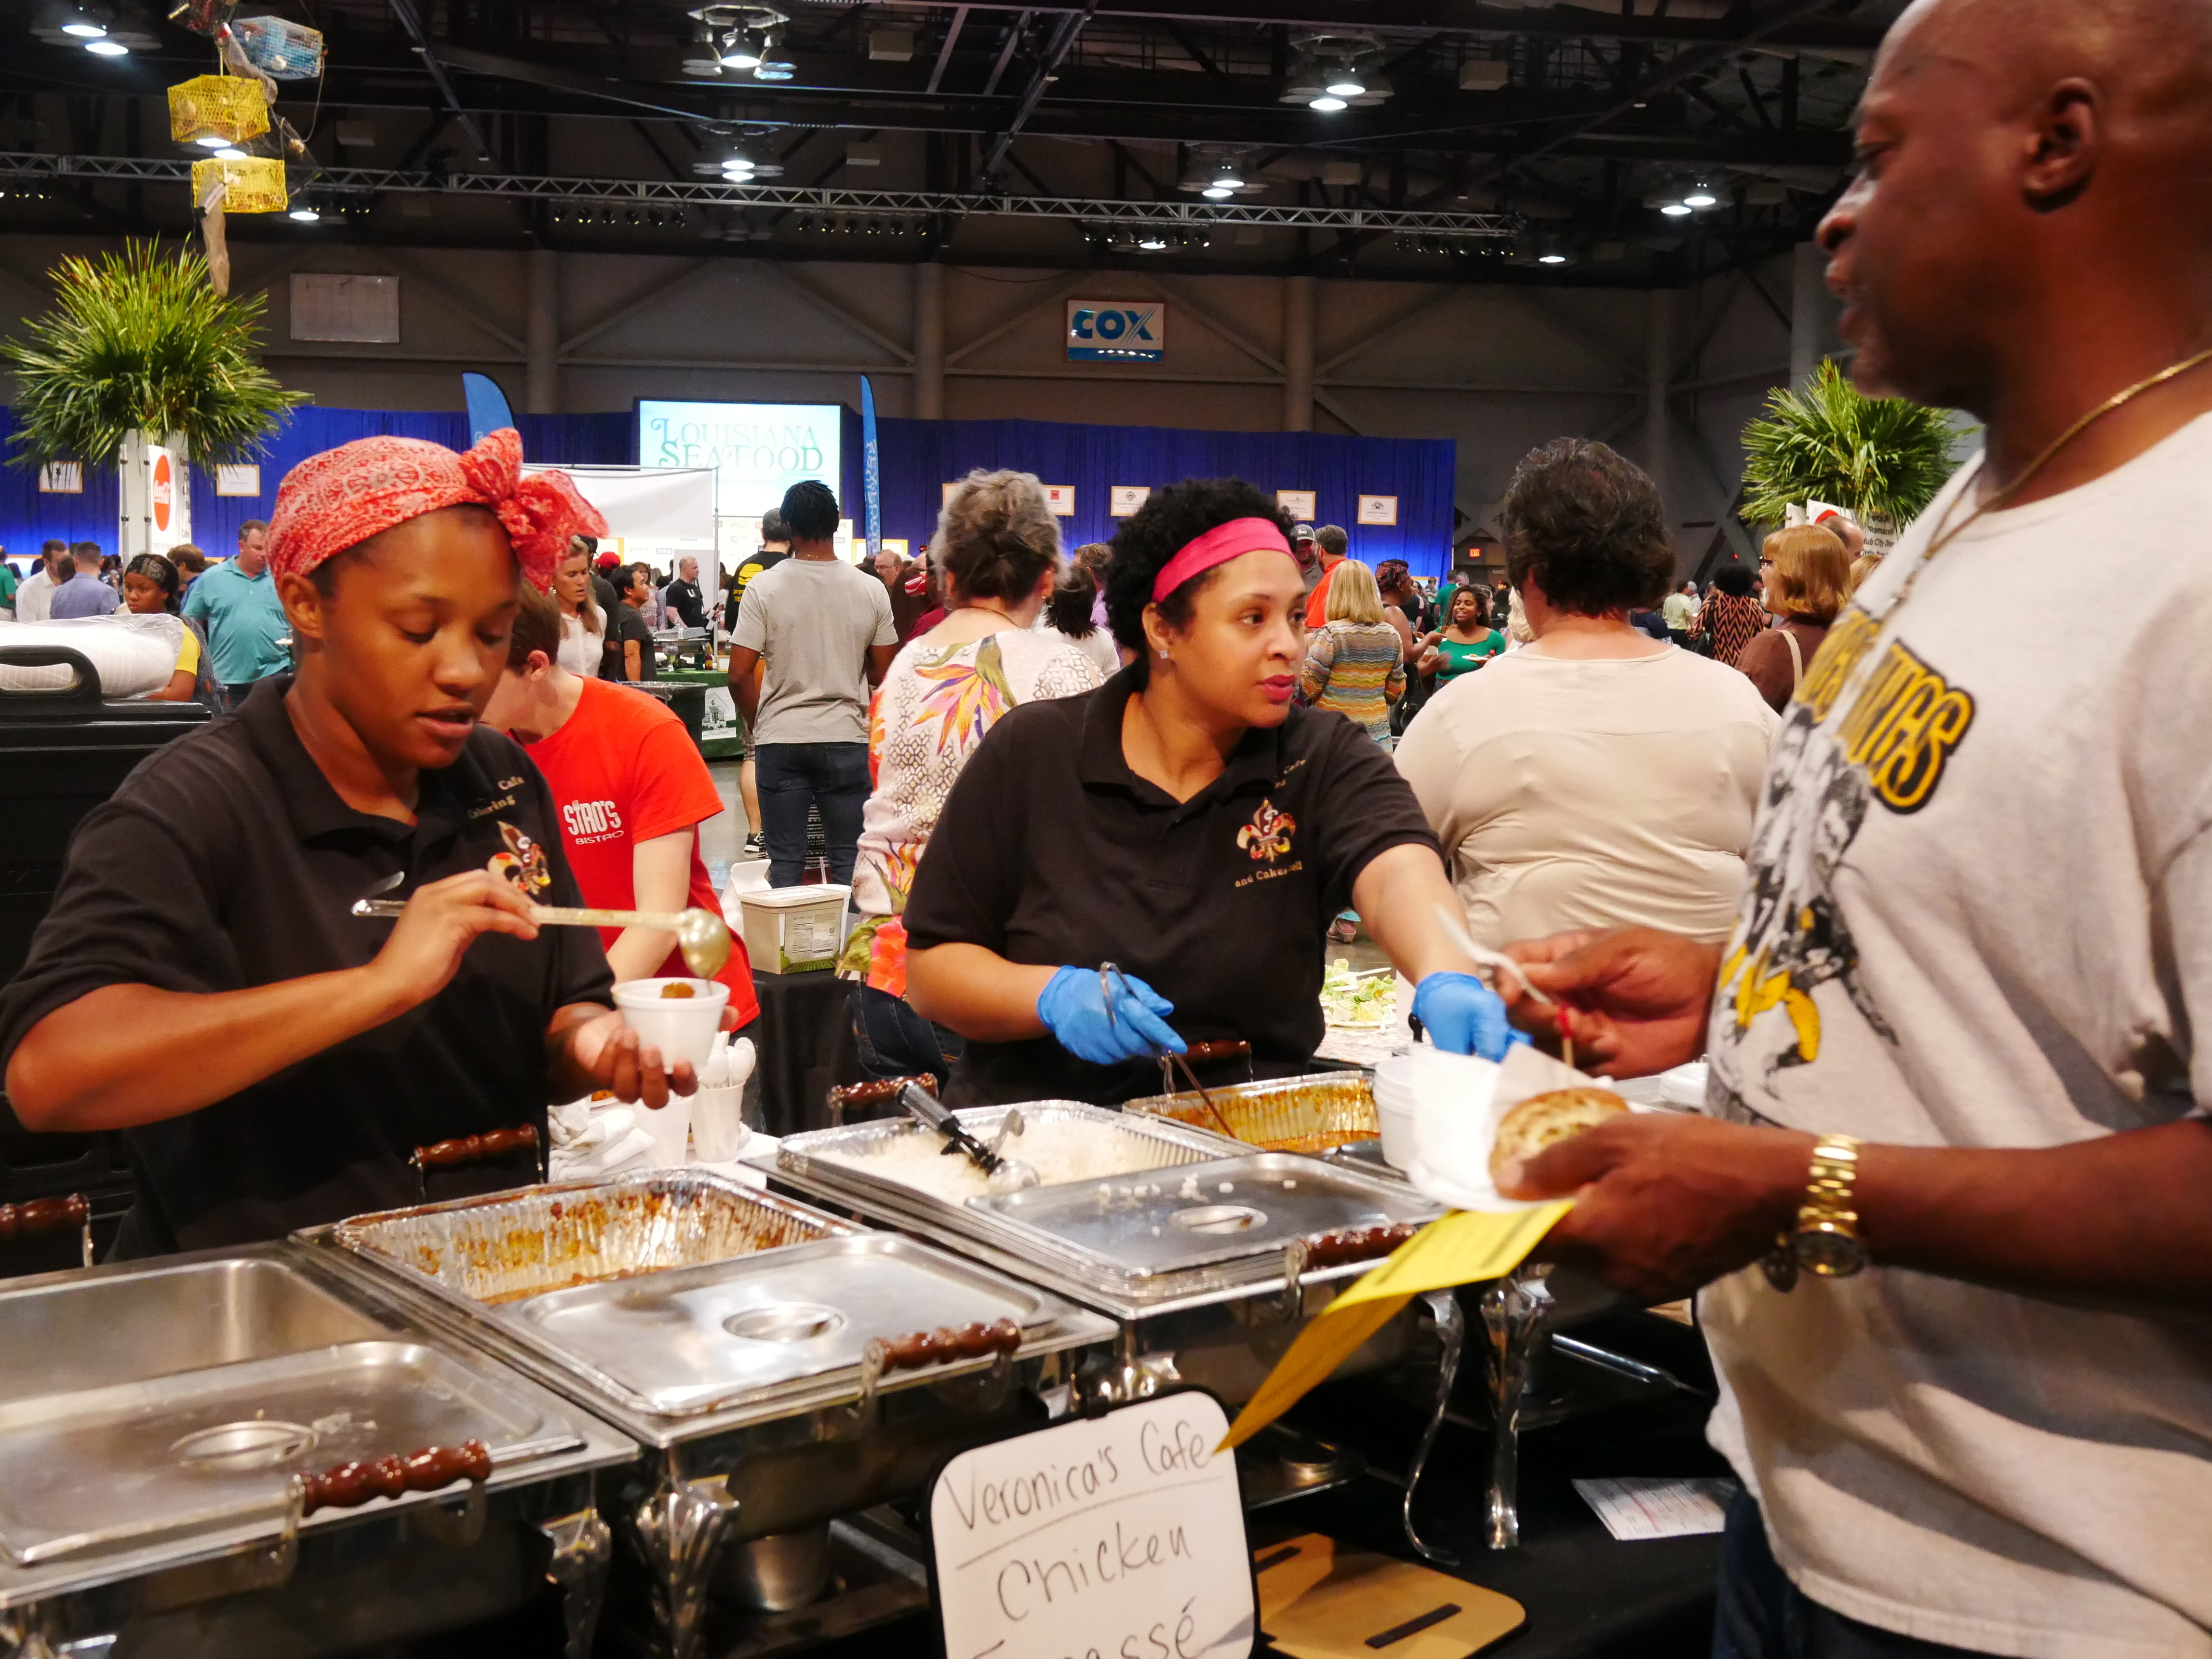 """Restaurant workers dole out chicken fricassee at the """"Taste of EatLafayette"""" festival in the sprawling Cajundome arena in Lafayette, Louisiana. Locals say Bourdain captured the subtleties of their culture and cuisine, even if at times some thought he overemphasized alcohol."""